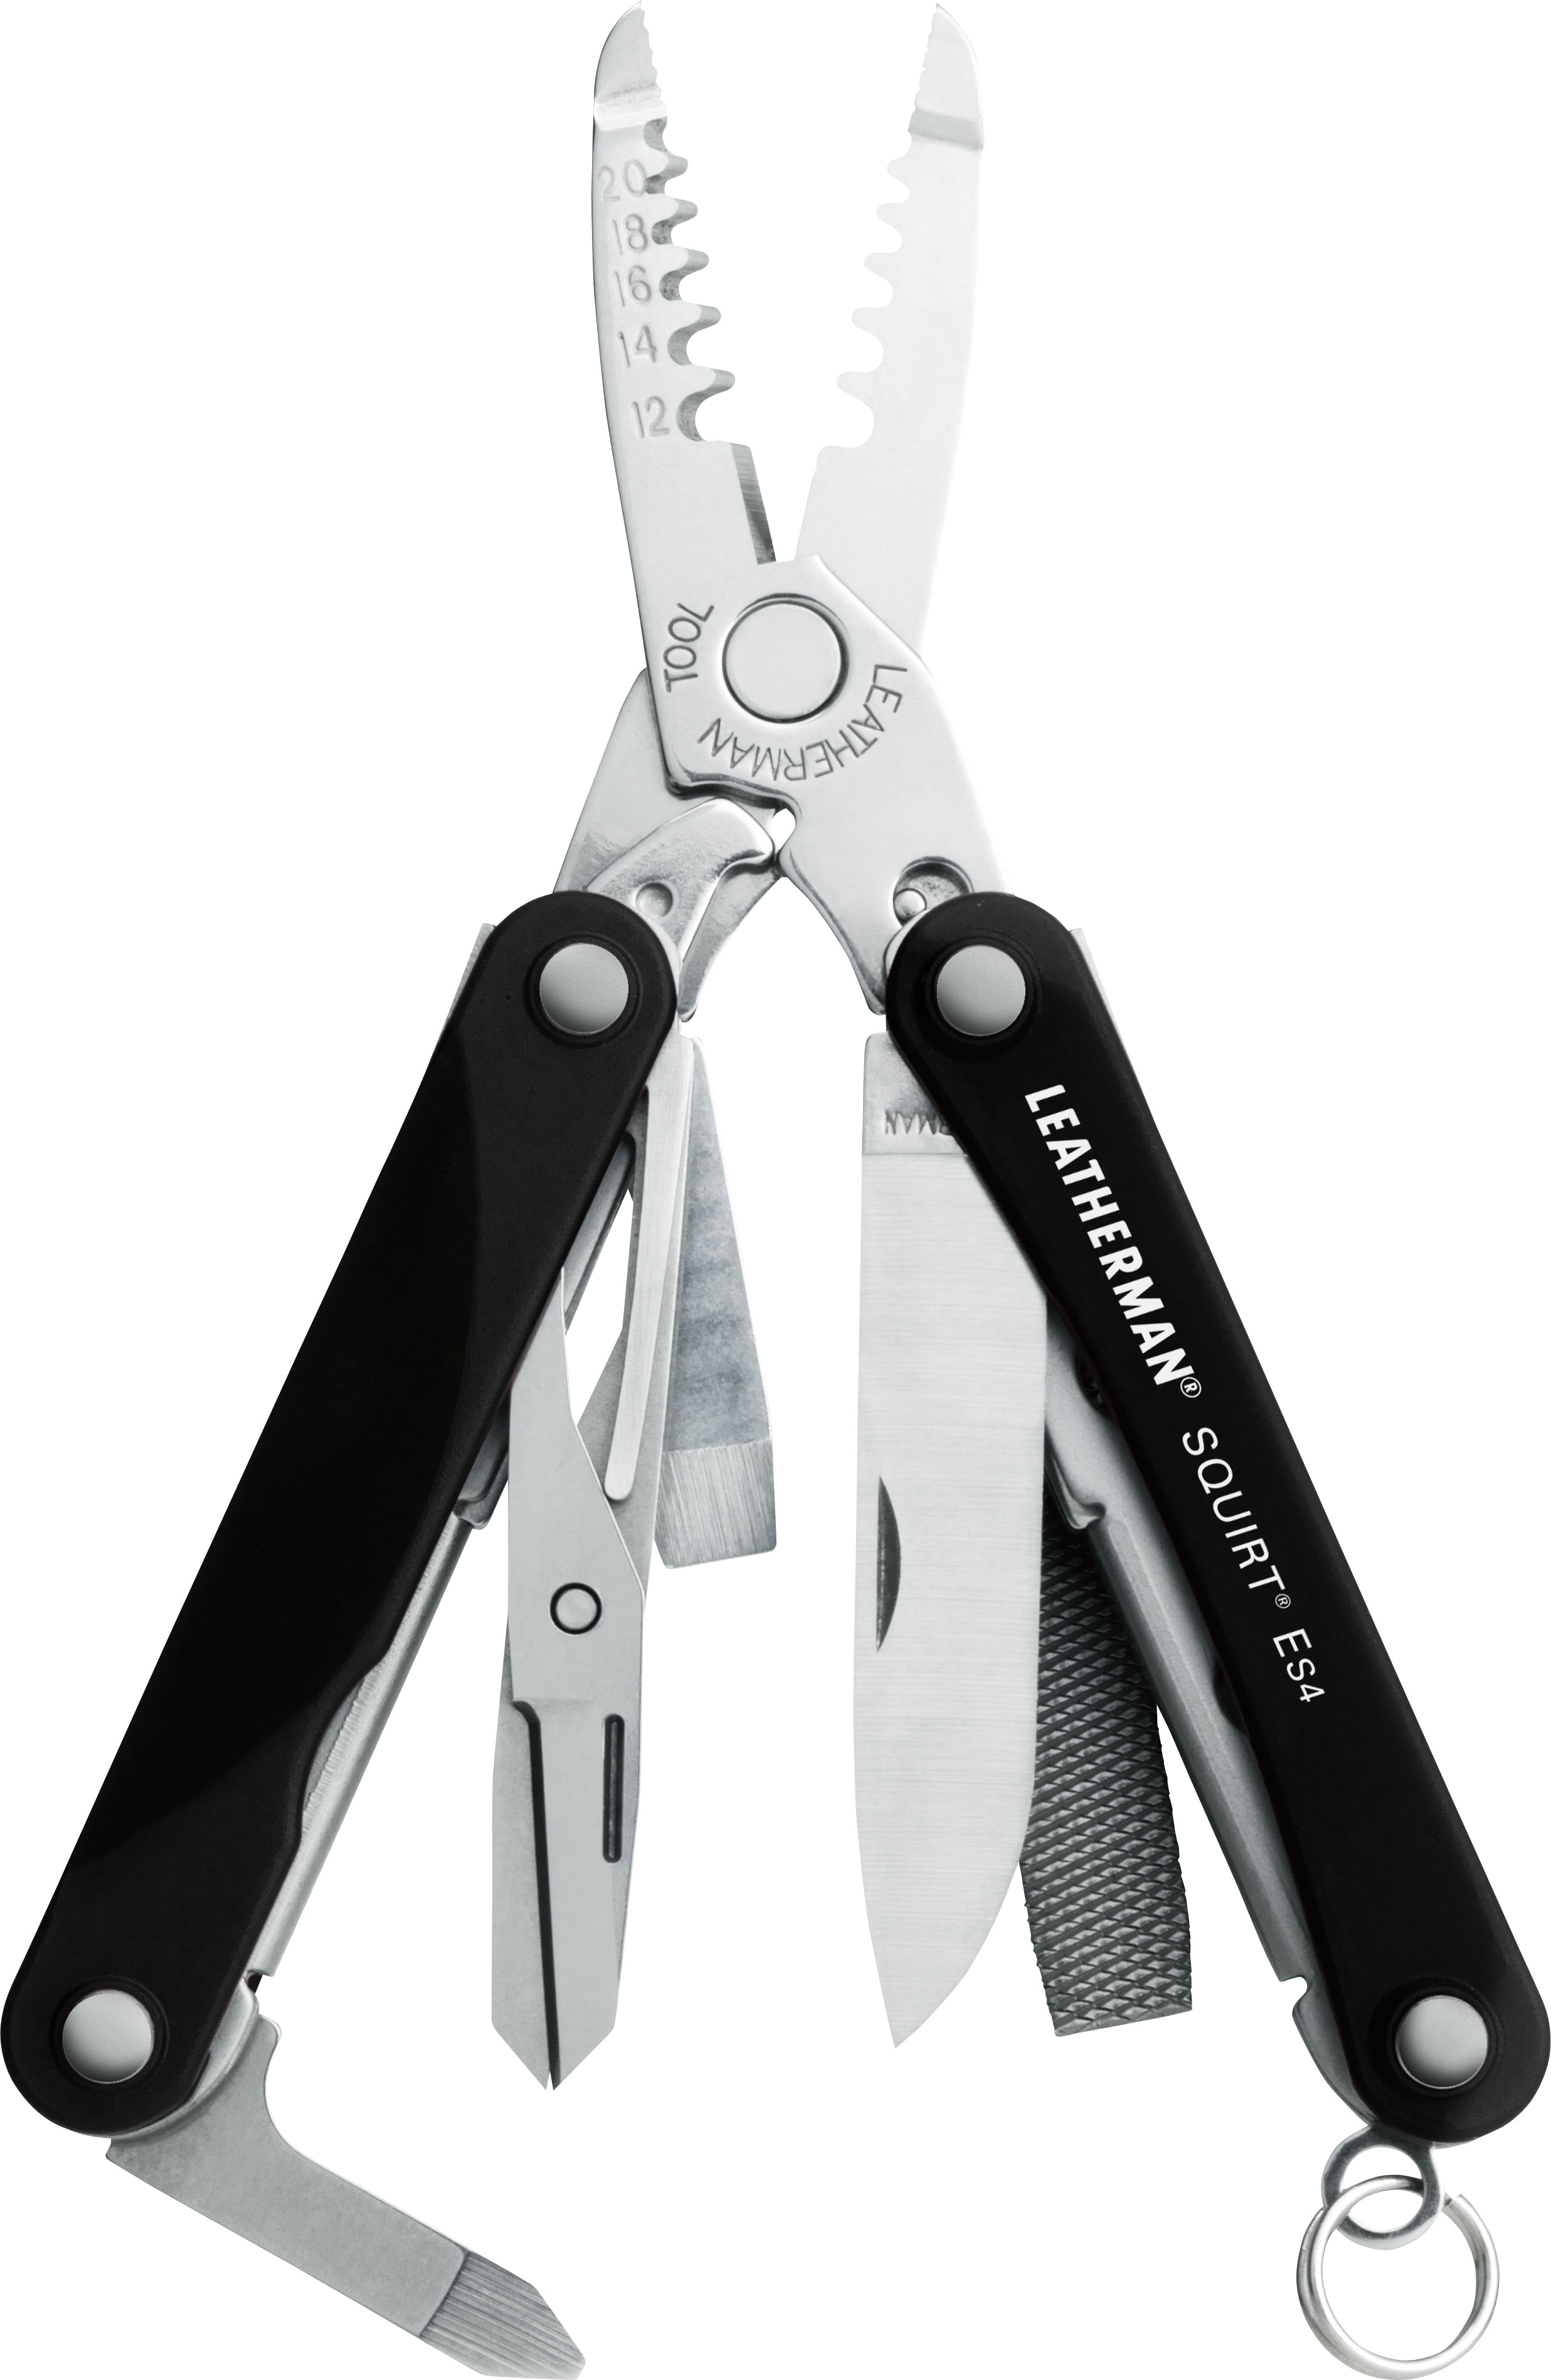 Leatherman Squirt ES4 Keychain Electrician's Mini Multi-Tool, Black Aluminum Handles